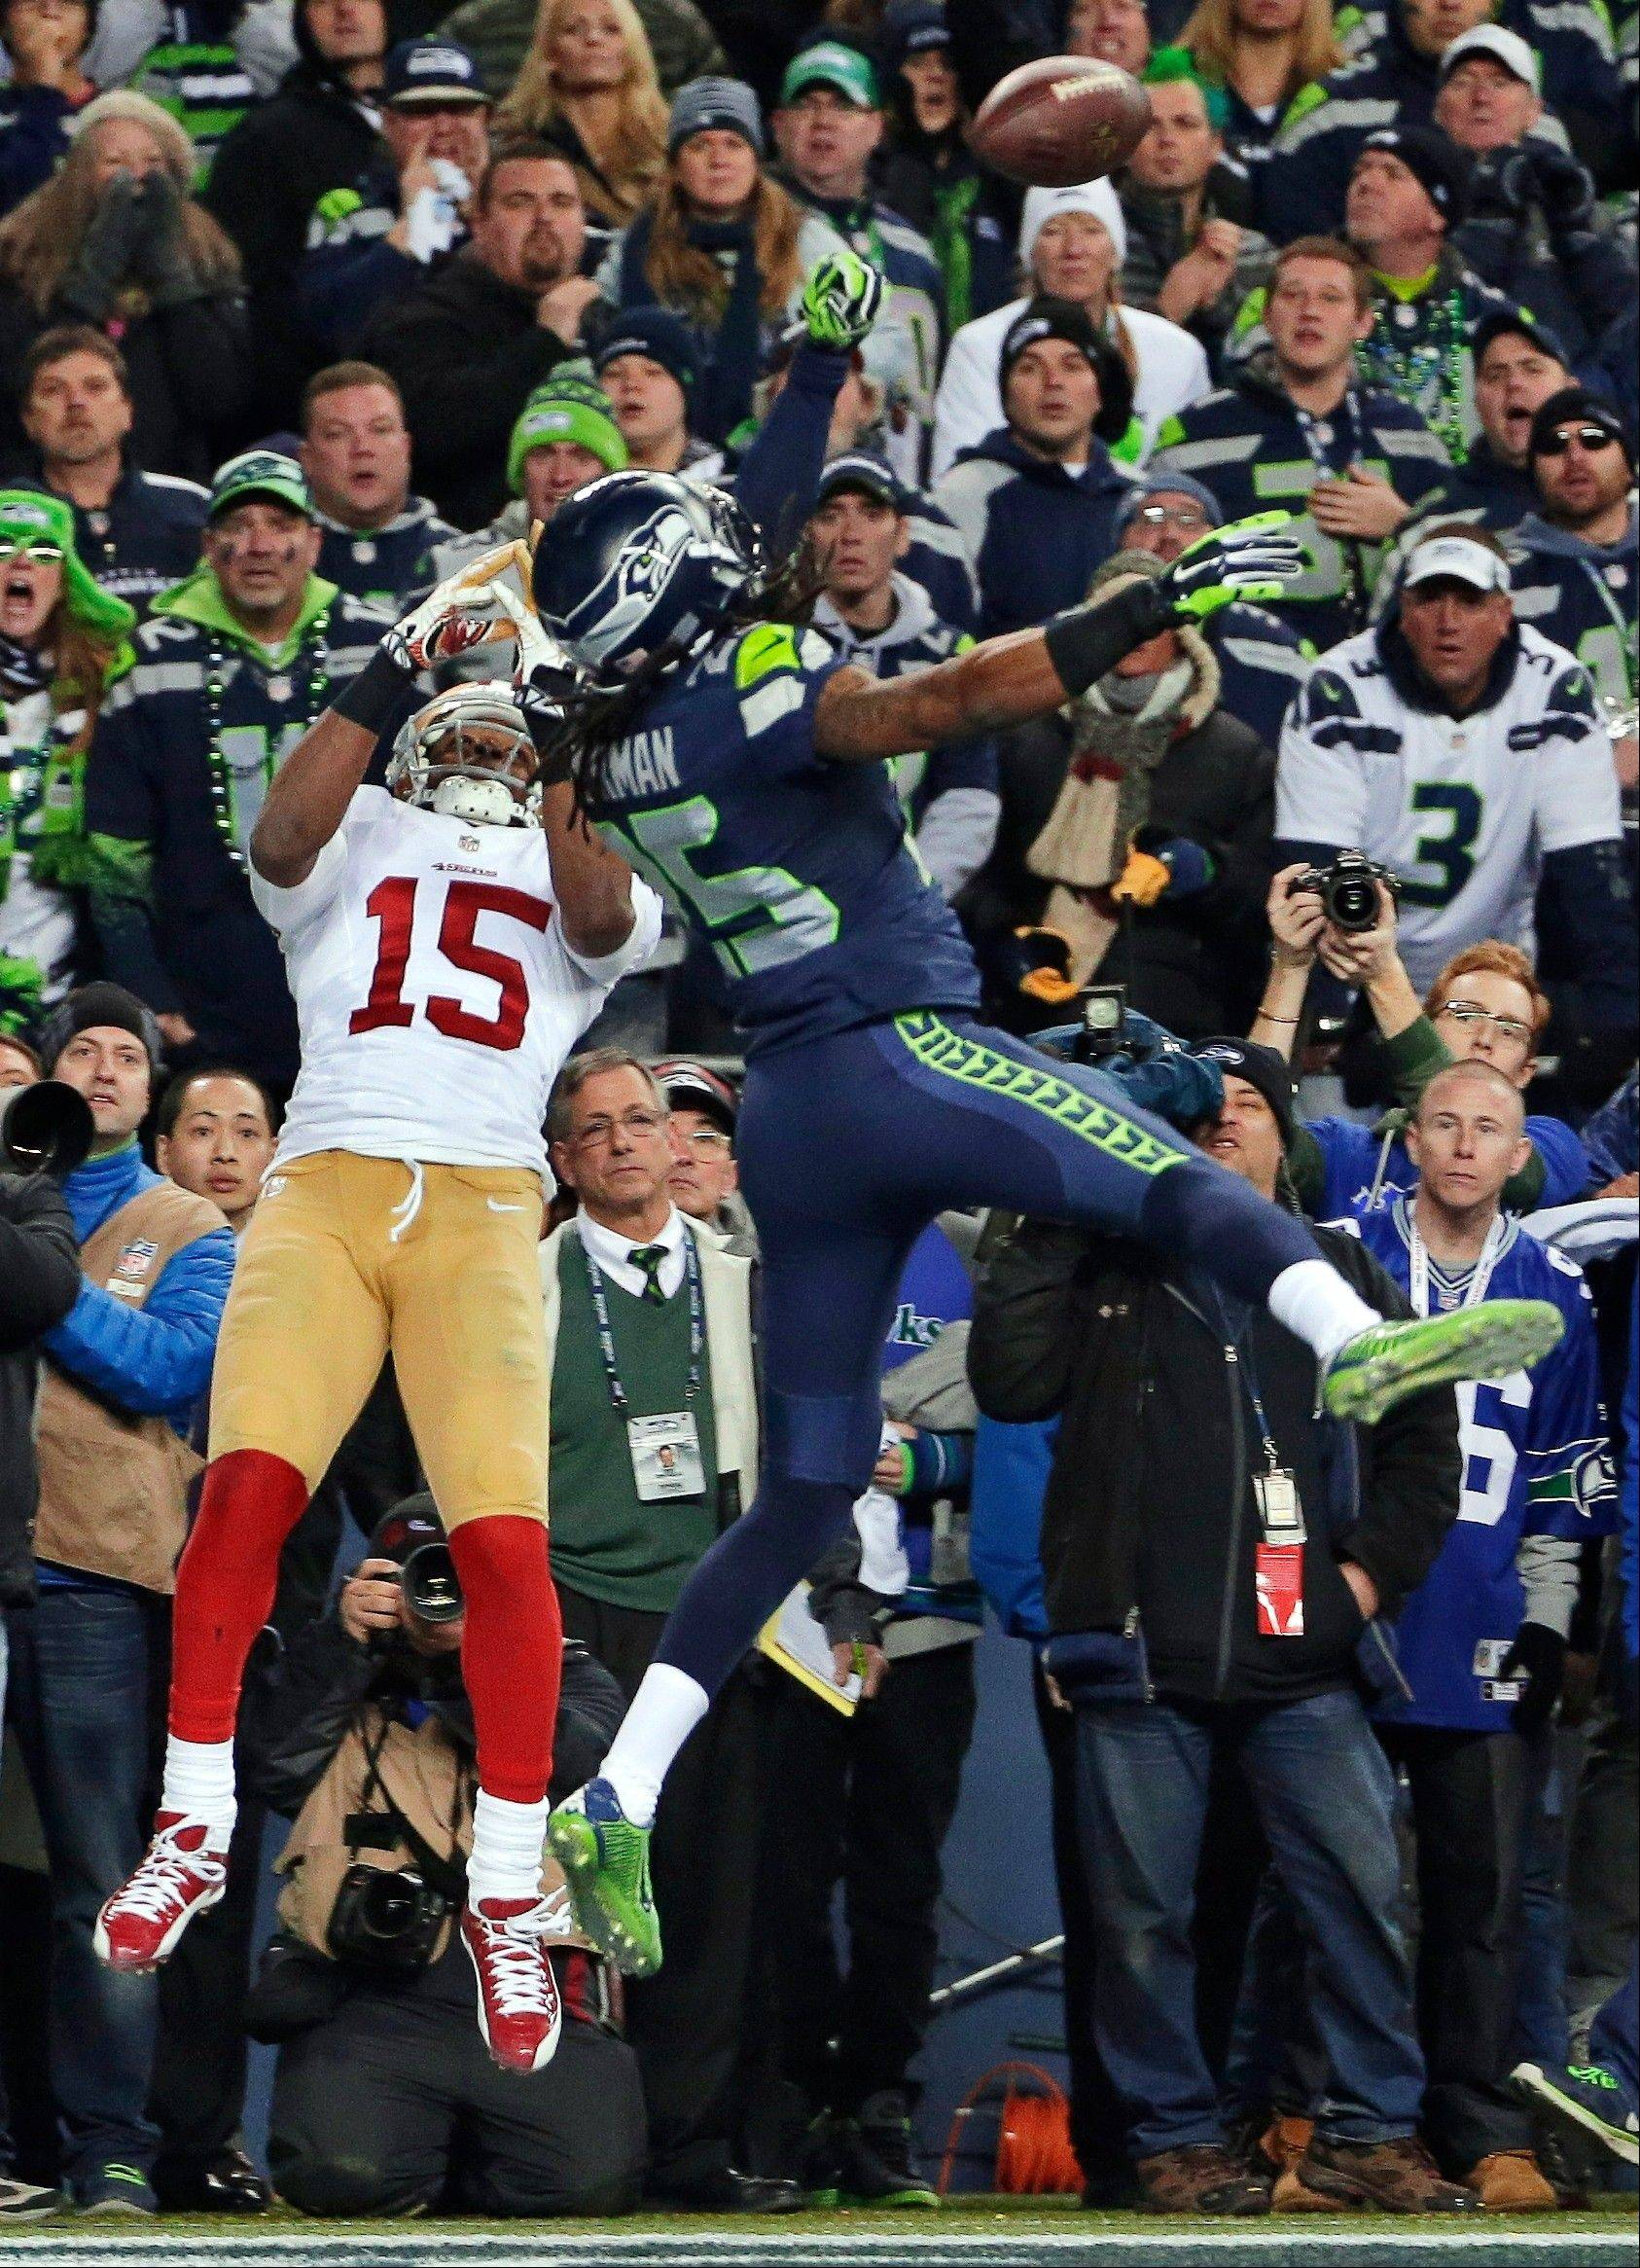 Richard Sherman (25) tips a pass in the end zone intended for San Francisco 49ers' Michael Crabtree (15) in the final minute of the second half of the NFC championship NFL football game in Seattle. Seattle's Malcolm Smith intercepted the tipped pass. Sherman was fined $7,875 for unsportsmanlike conduct/taunting after he made a choking gesture after the play toward the San Francisco bench that he said was directed at quarterback Colin Kaepernick.